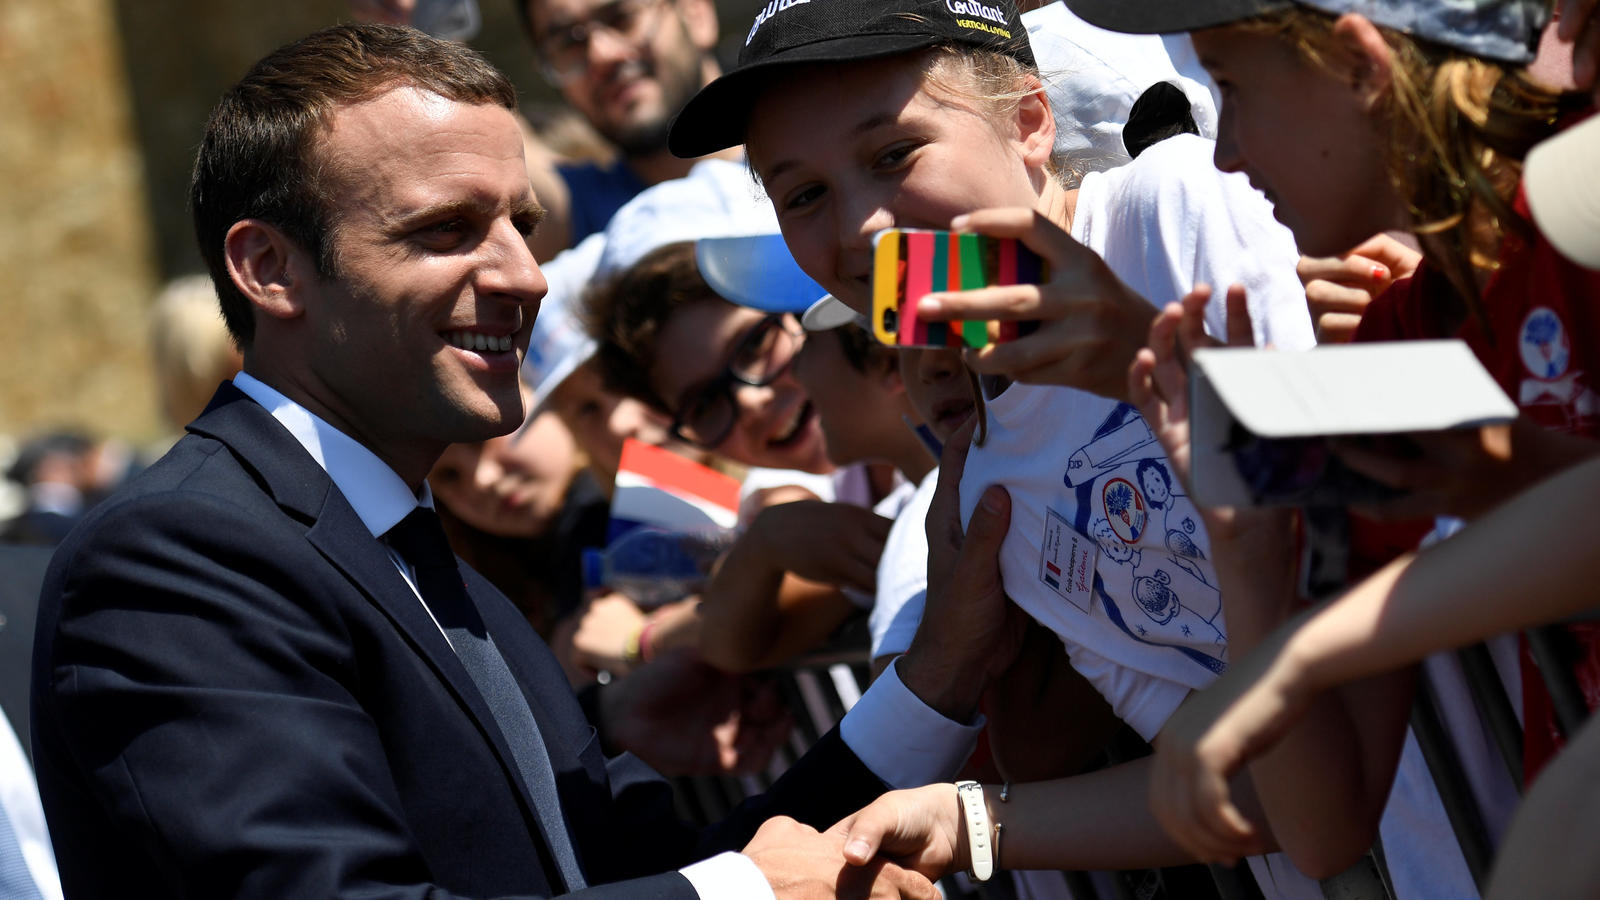 French President Emmanuel Macron (L) attends a ceremony marking the 77th anniversary of late French General Charles de Gaulle's resistance call of June 18, 1940, at the Mont Valerien memorial in Suresnes, near Paris, France, June 18, 2017.  REUTERS/B